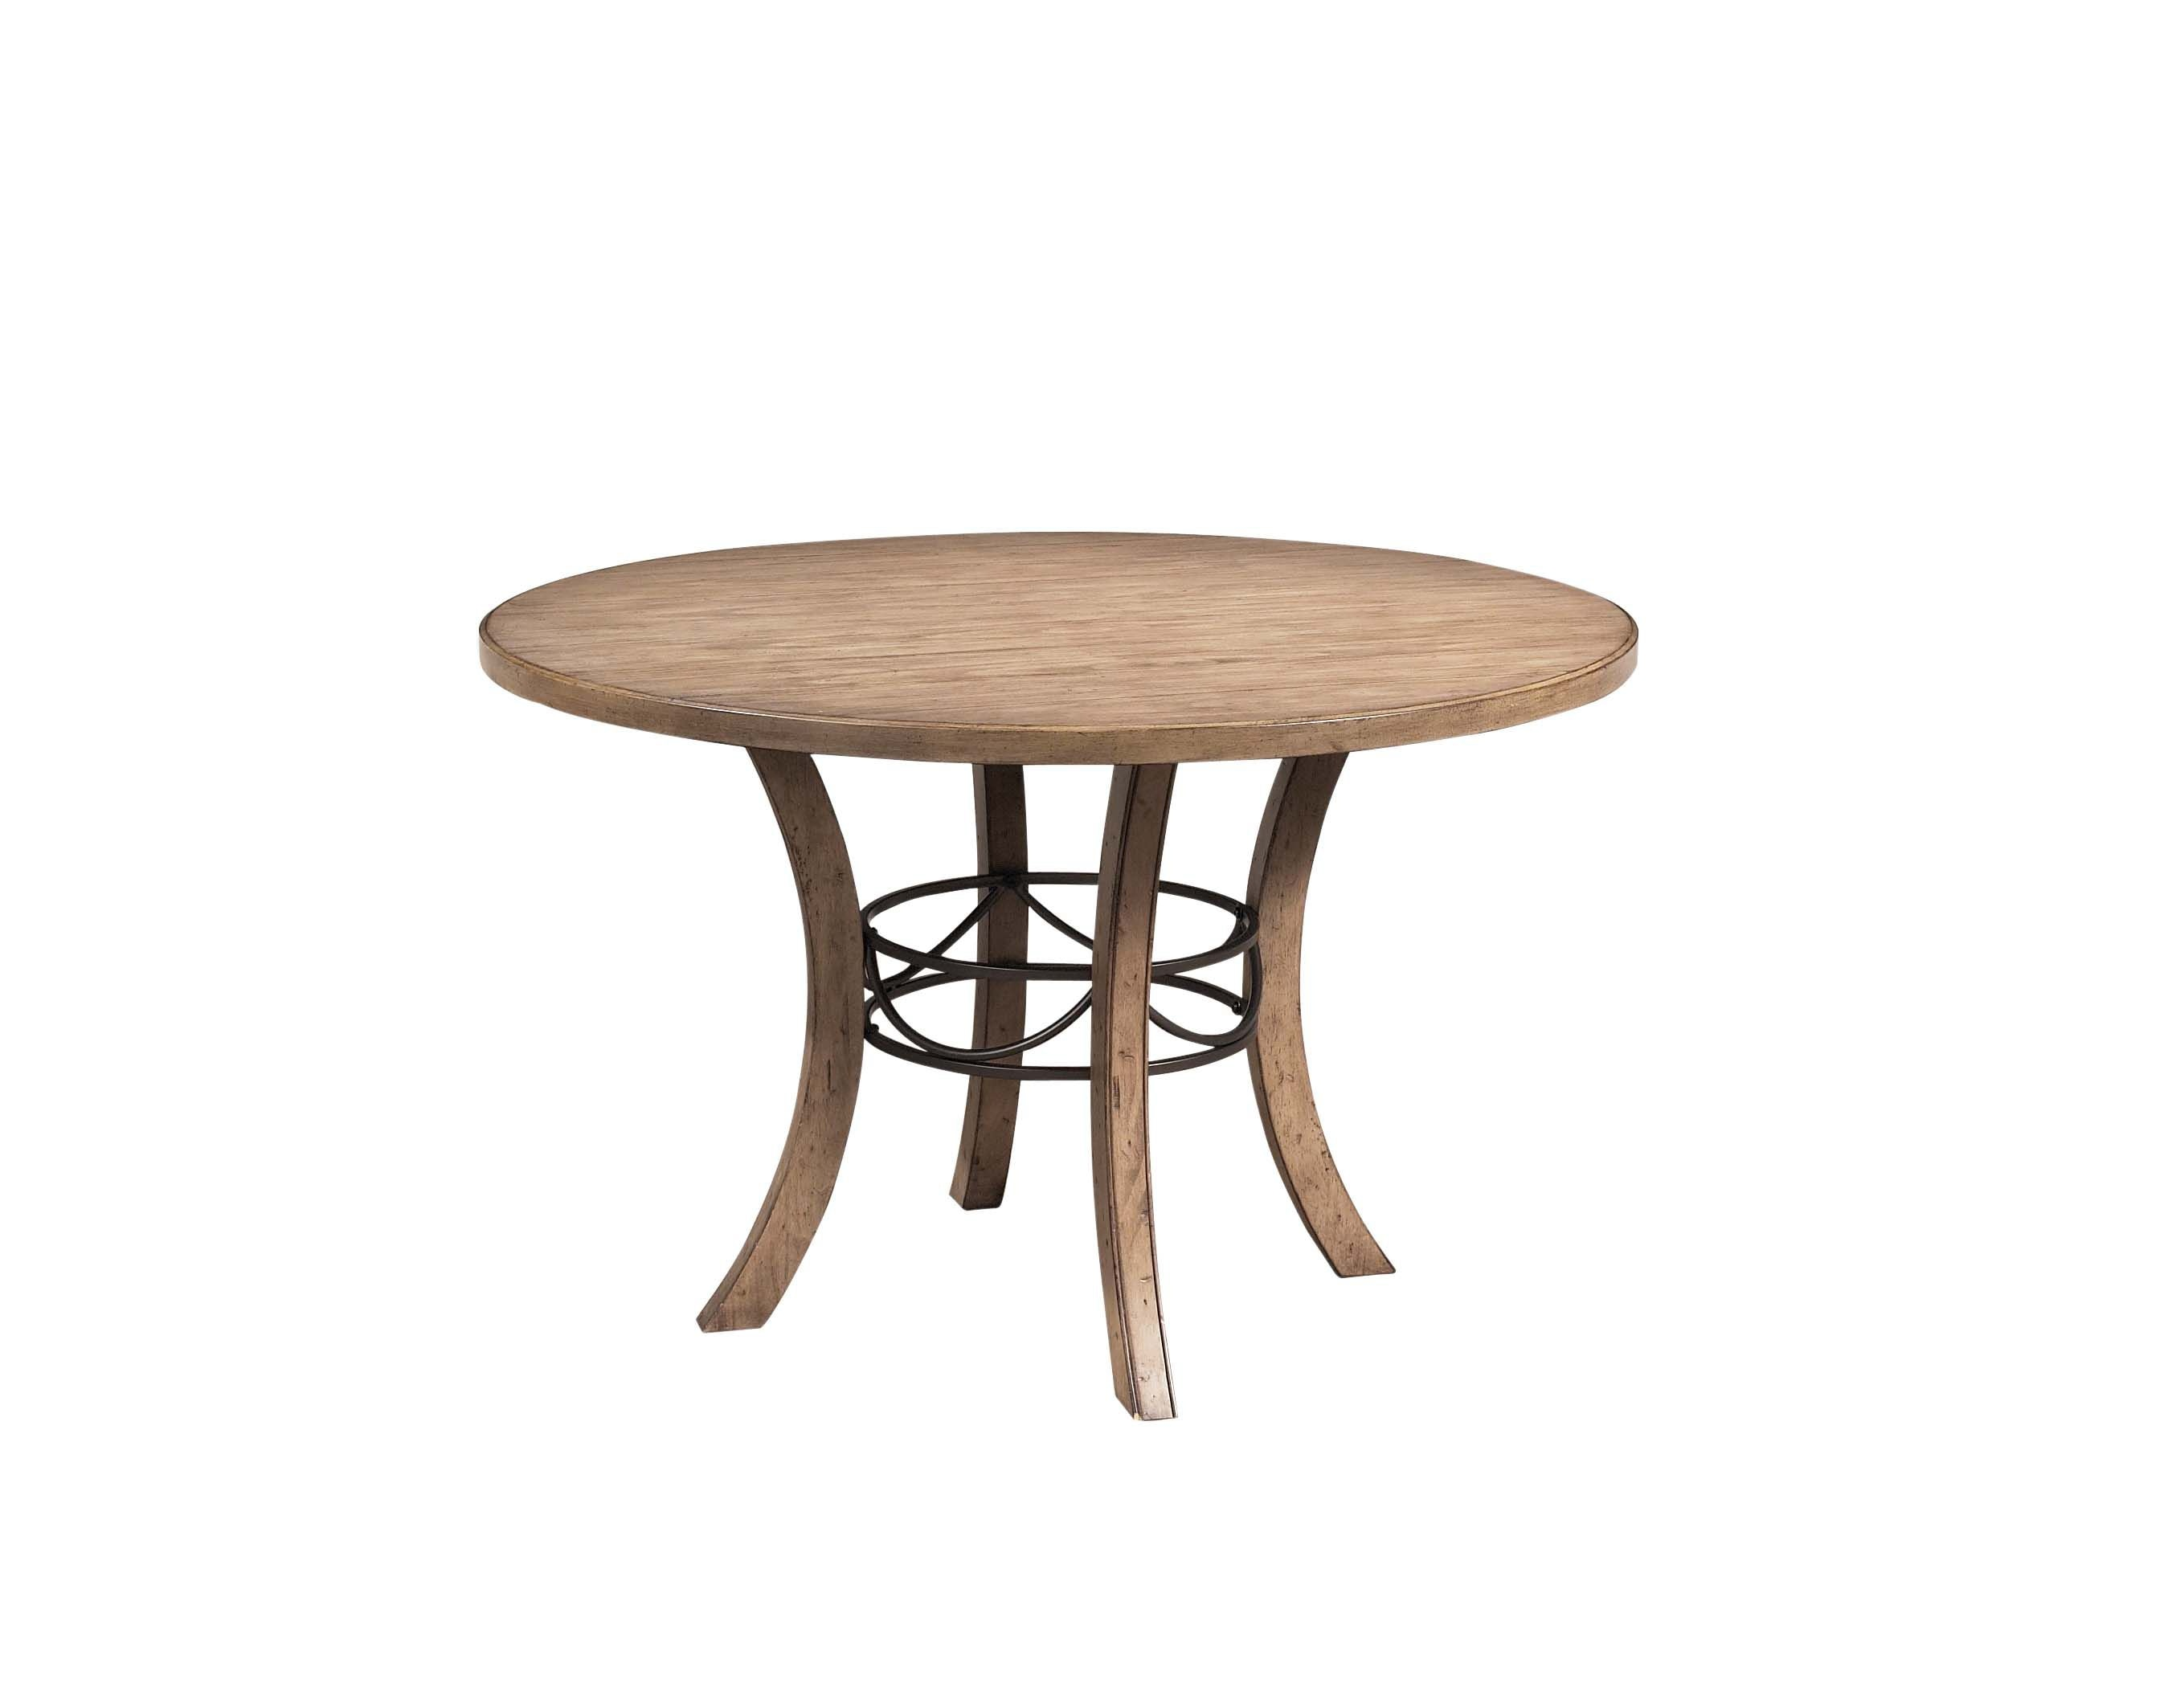 Hillsdale Furniture Dining Room Charleston Round Wood Table With Metal Ring  4670DTBW   Carol House Furniture   Maryland Heights And Valley Park, MO